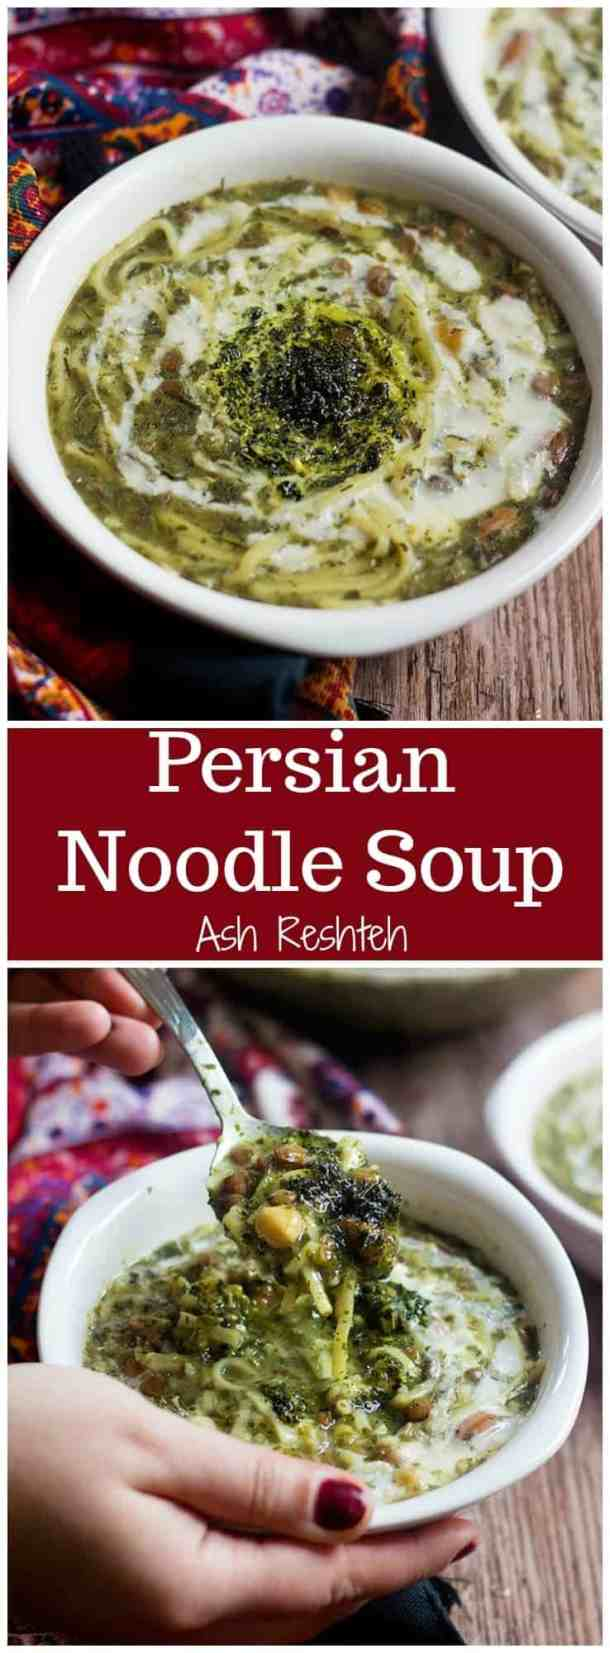 Ash Reshteh | Persian Noodle Soup | Persian Herb and Noodle Soup | Legume Soup | Persian Recipes | Persian Cuisine | Middle Eastern Recipes | Mediterranean recipes | One pot Recipes | UnicornsintheKitchen.com